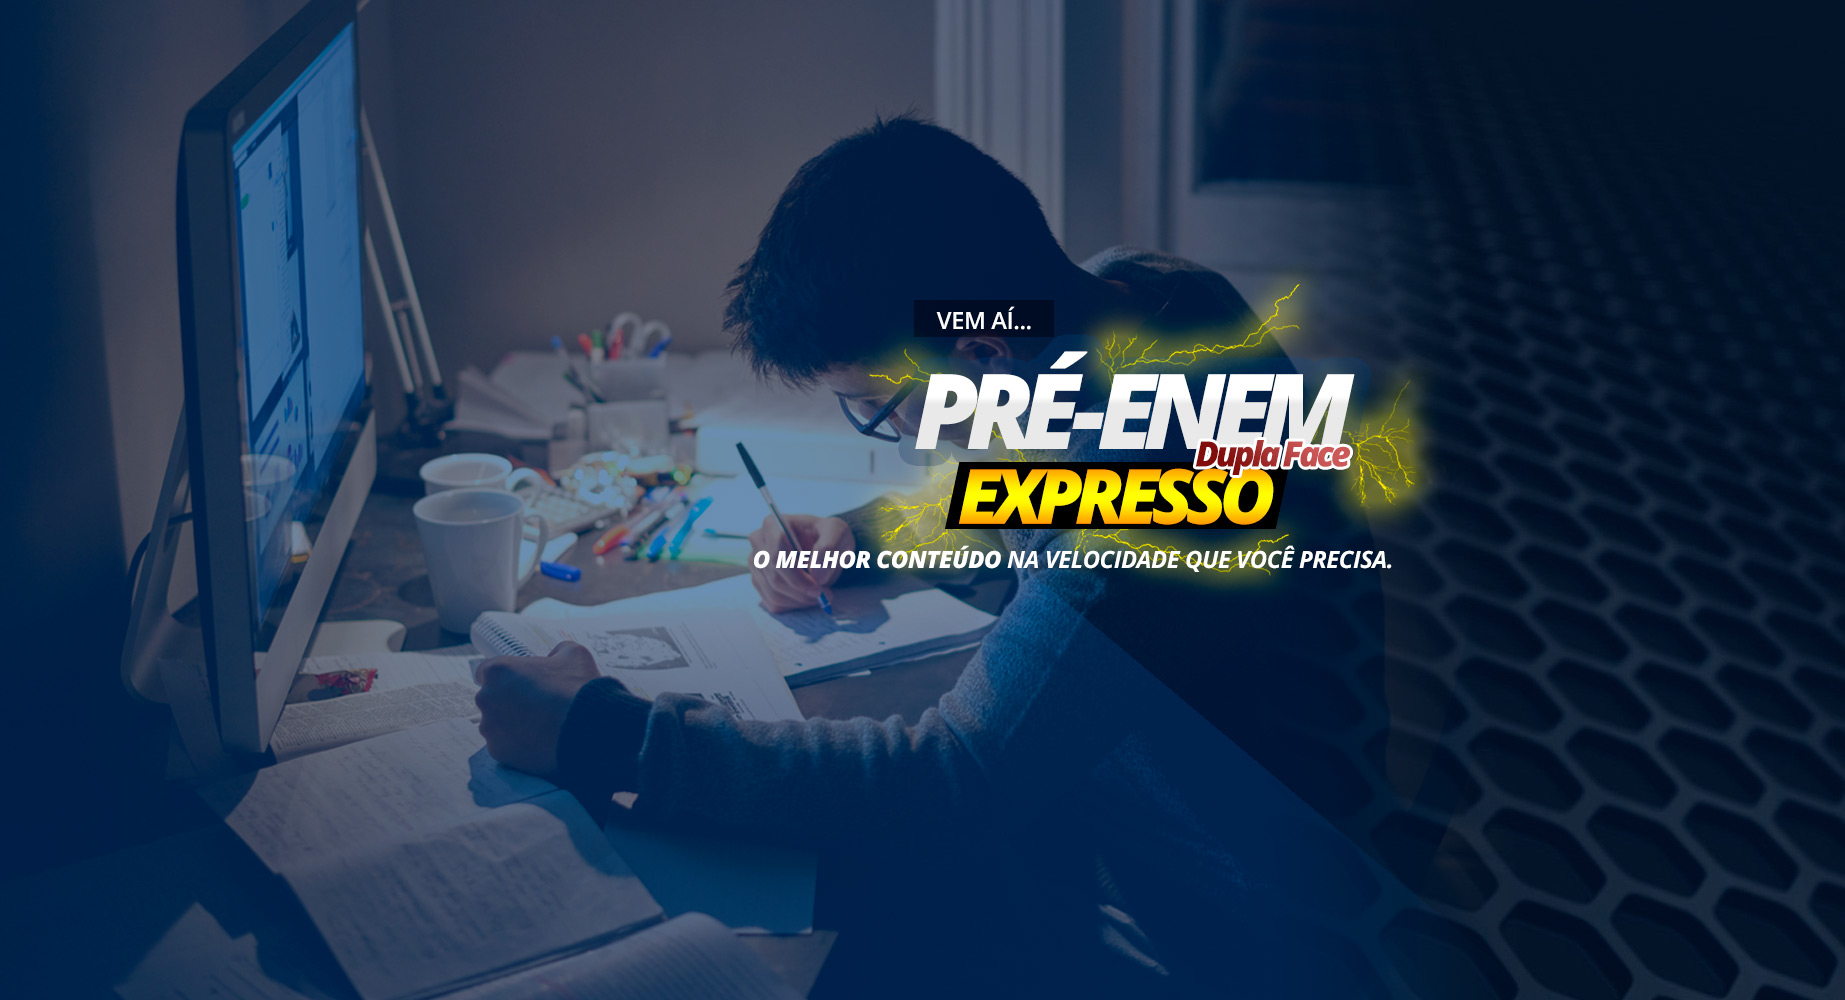 cpe-duplaface-expresso